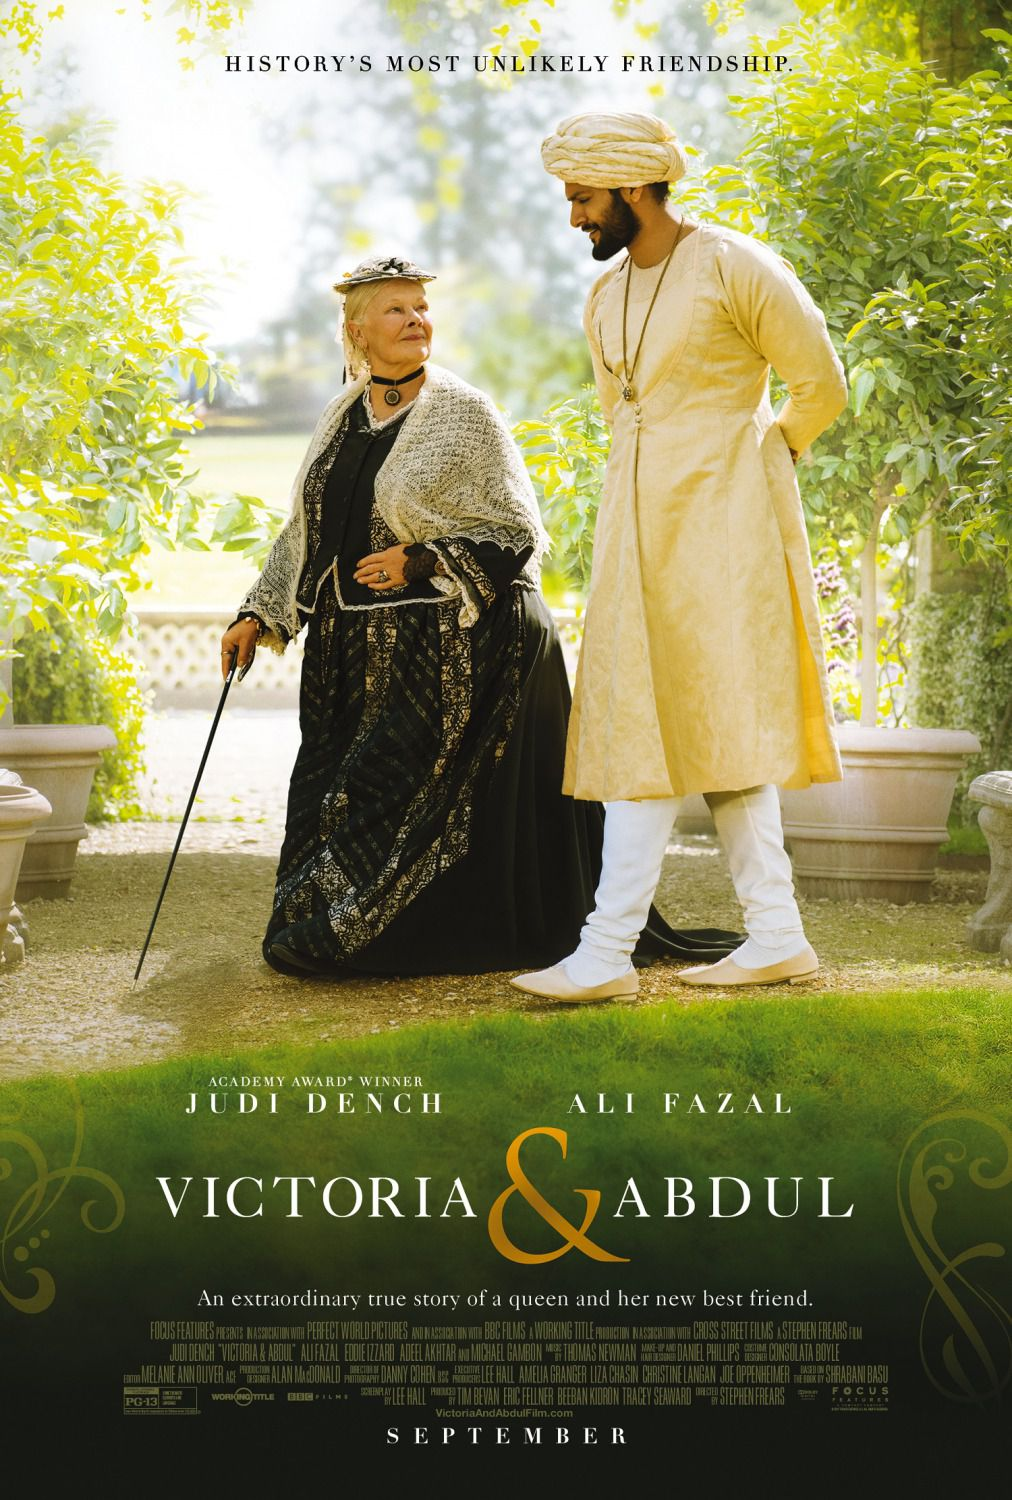 Film - Victoria and Abdul - poster - friendship